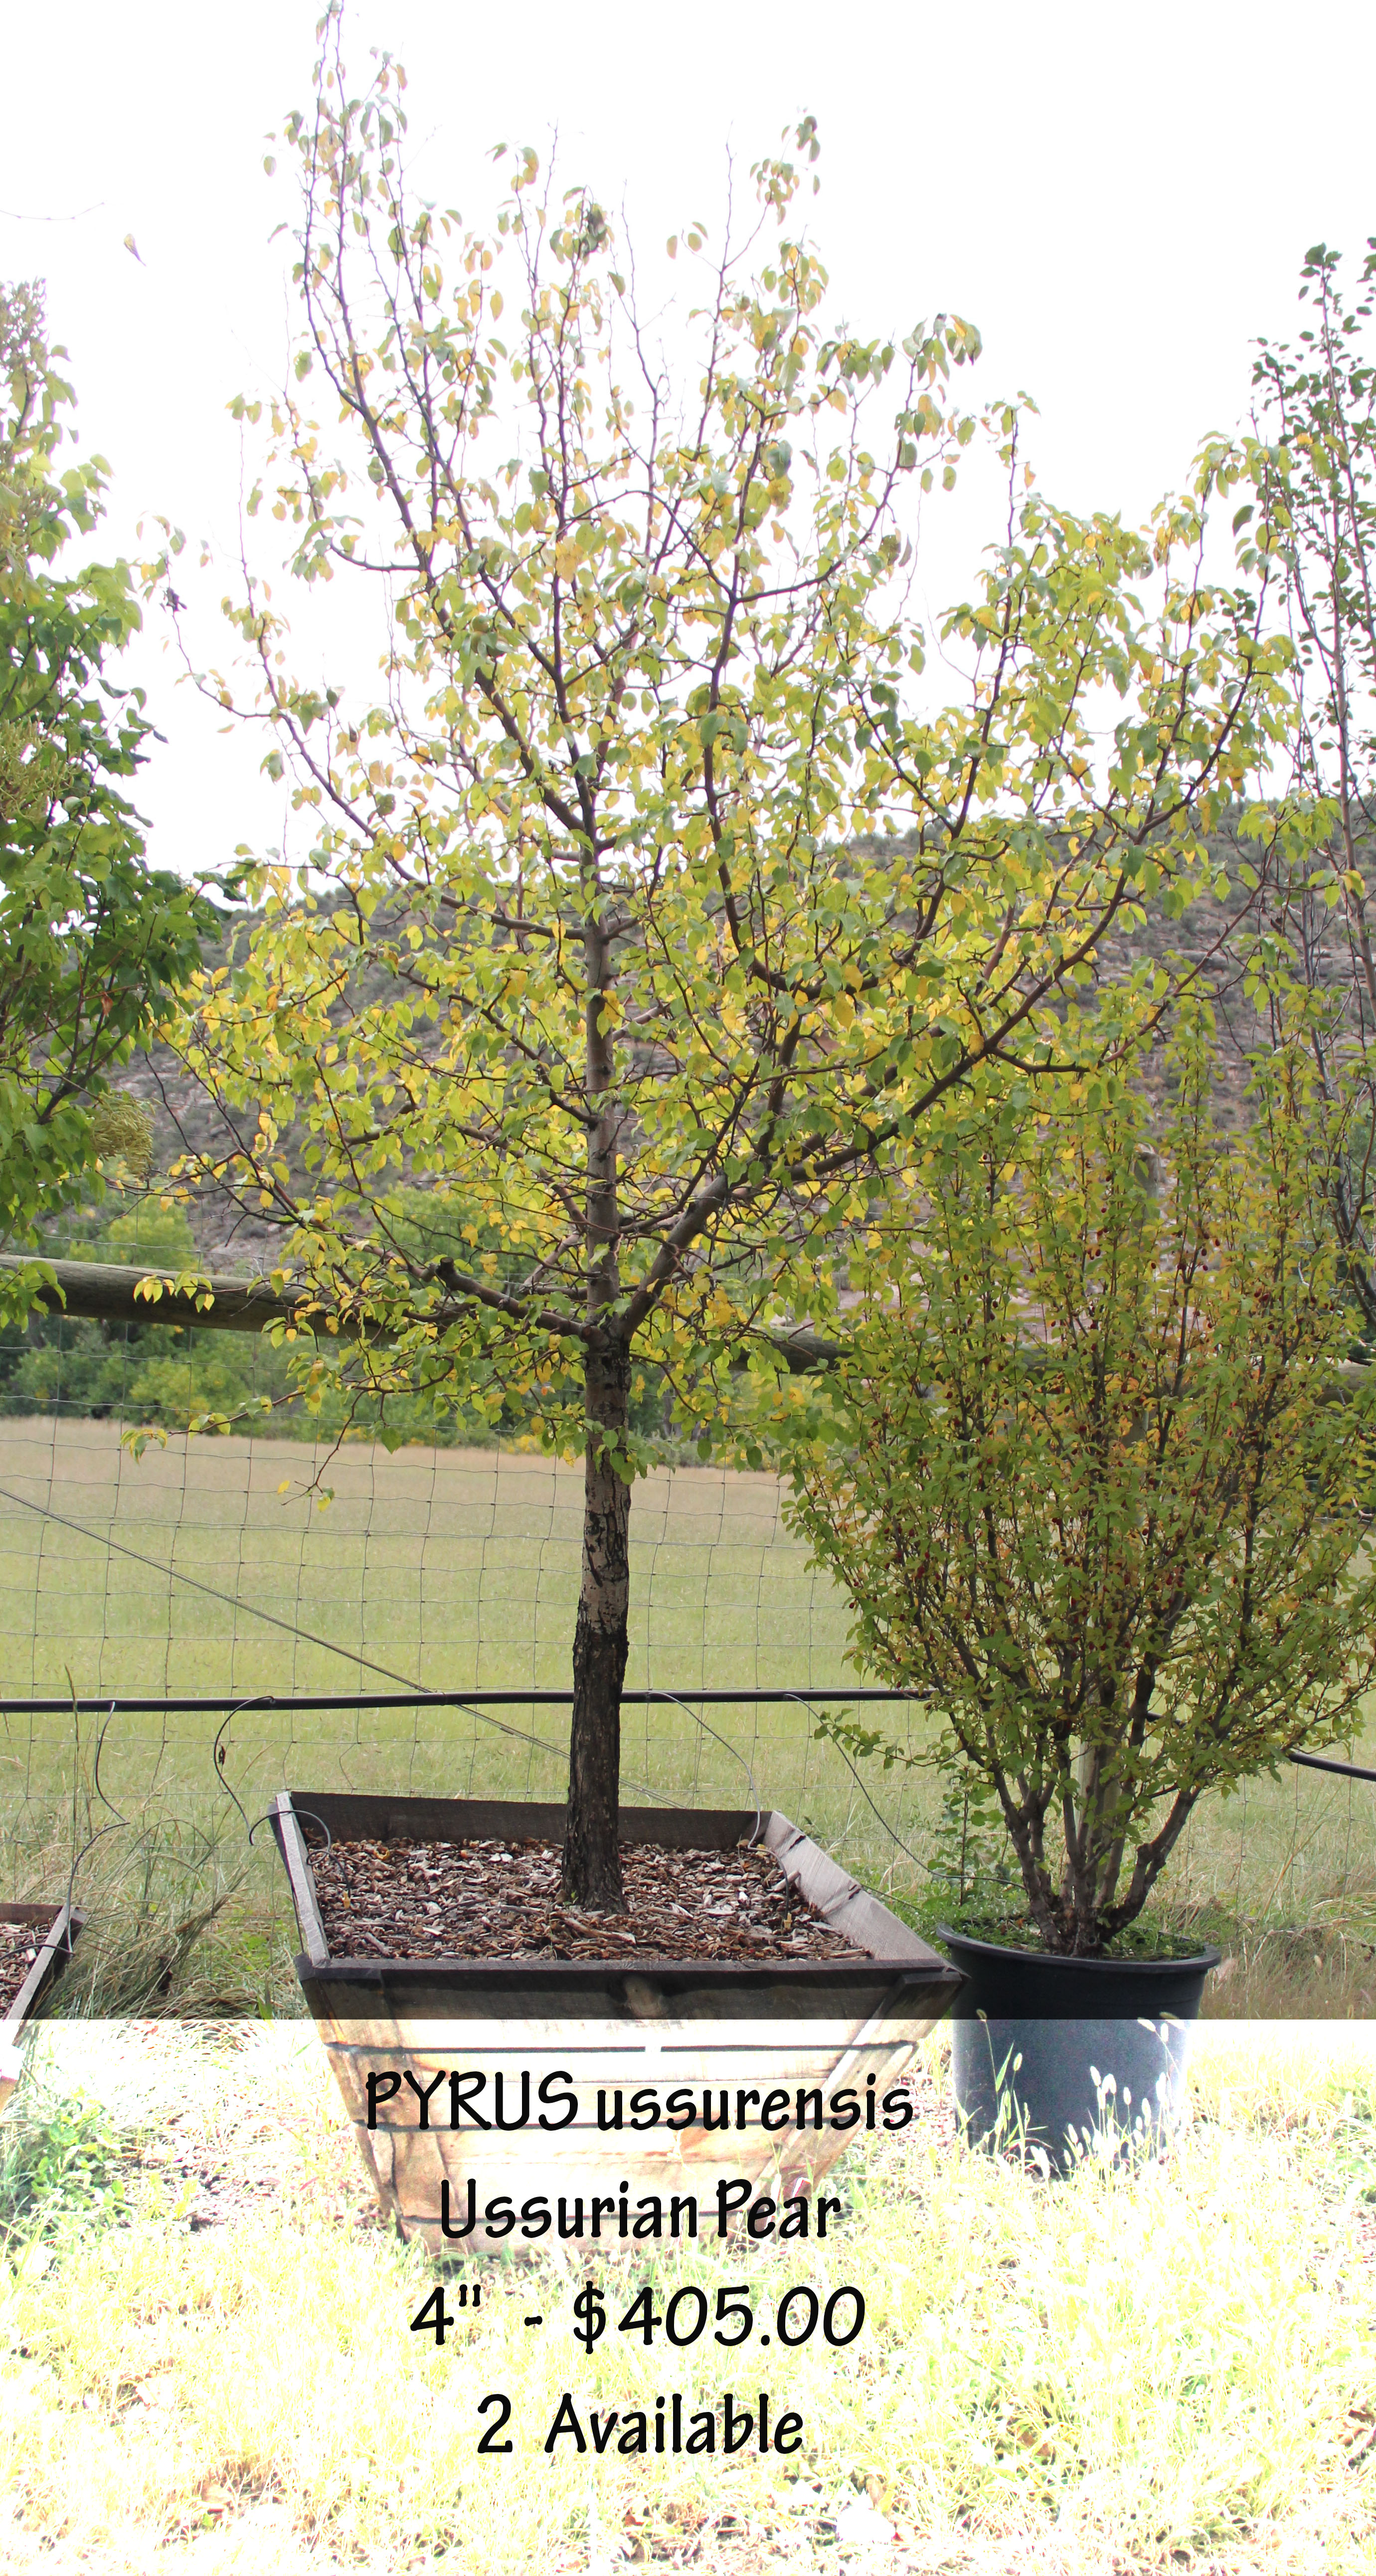 Ussurian Pear